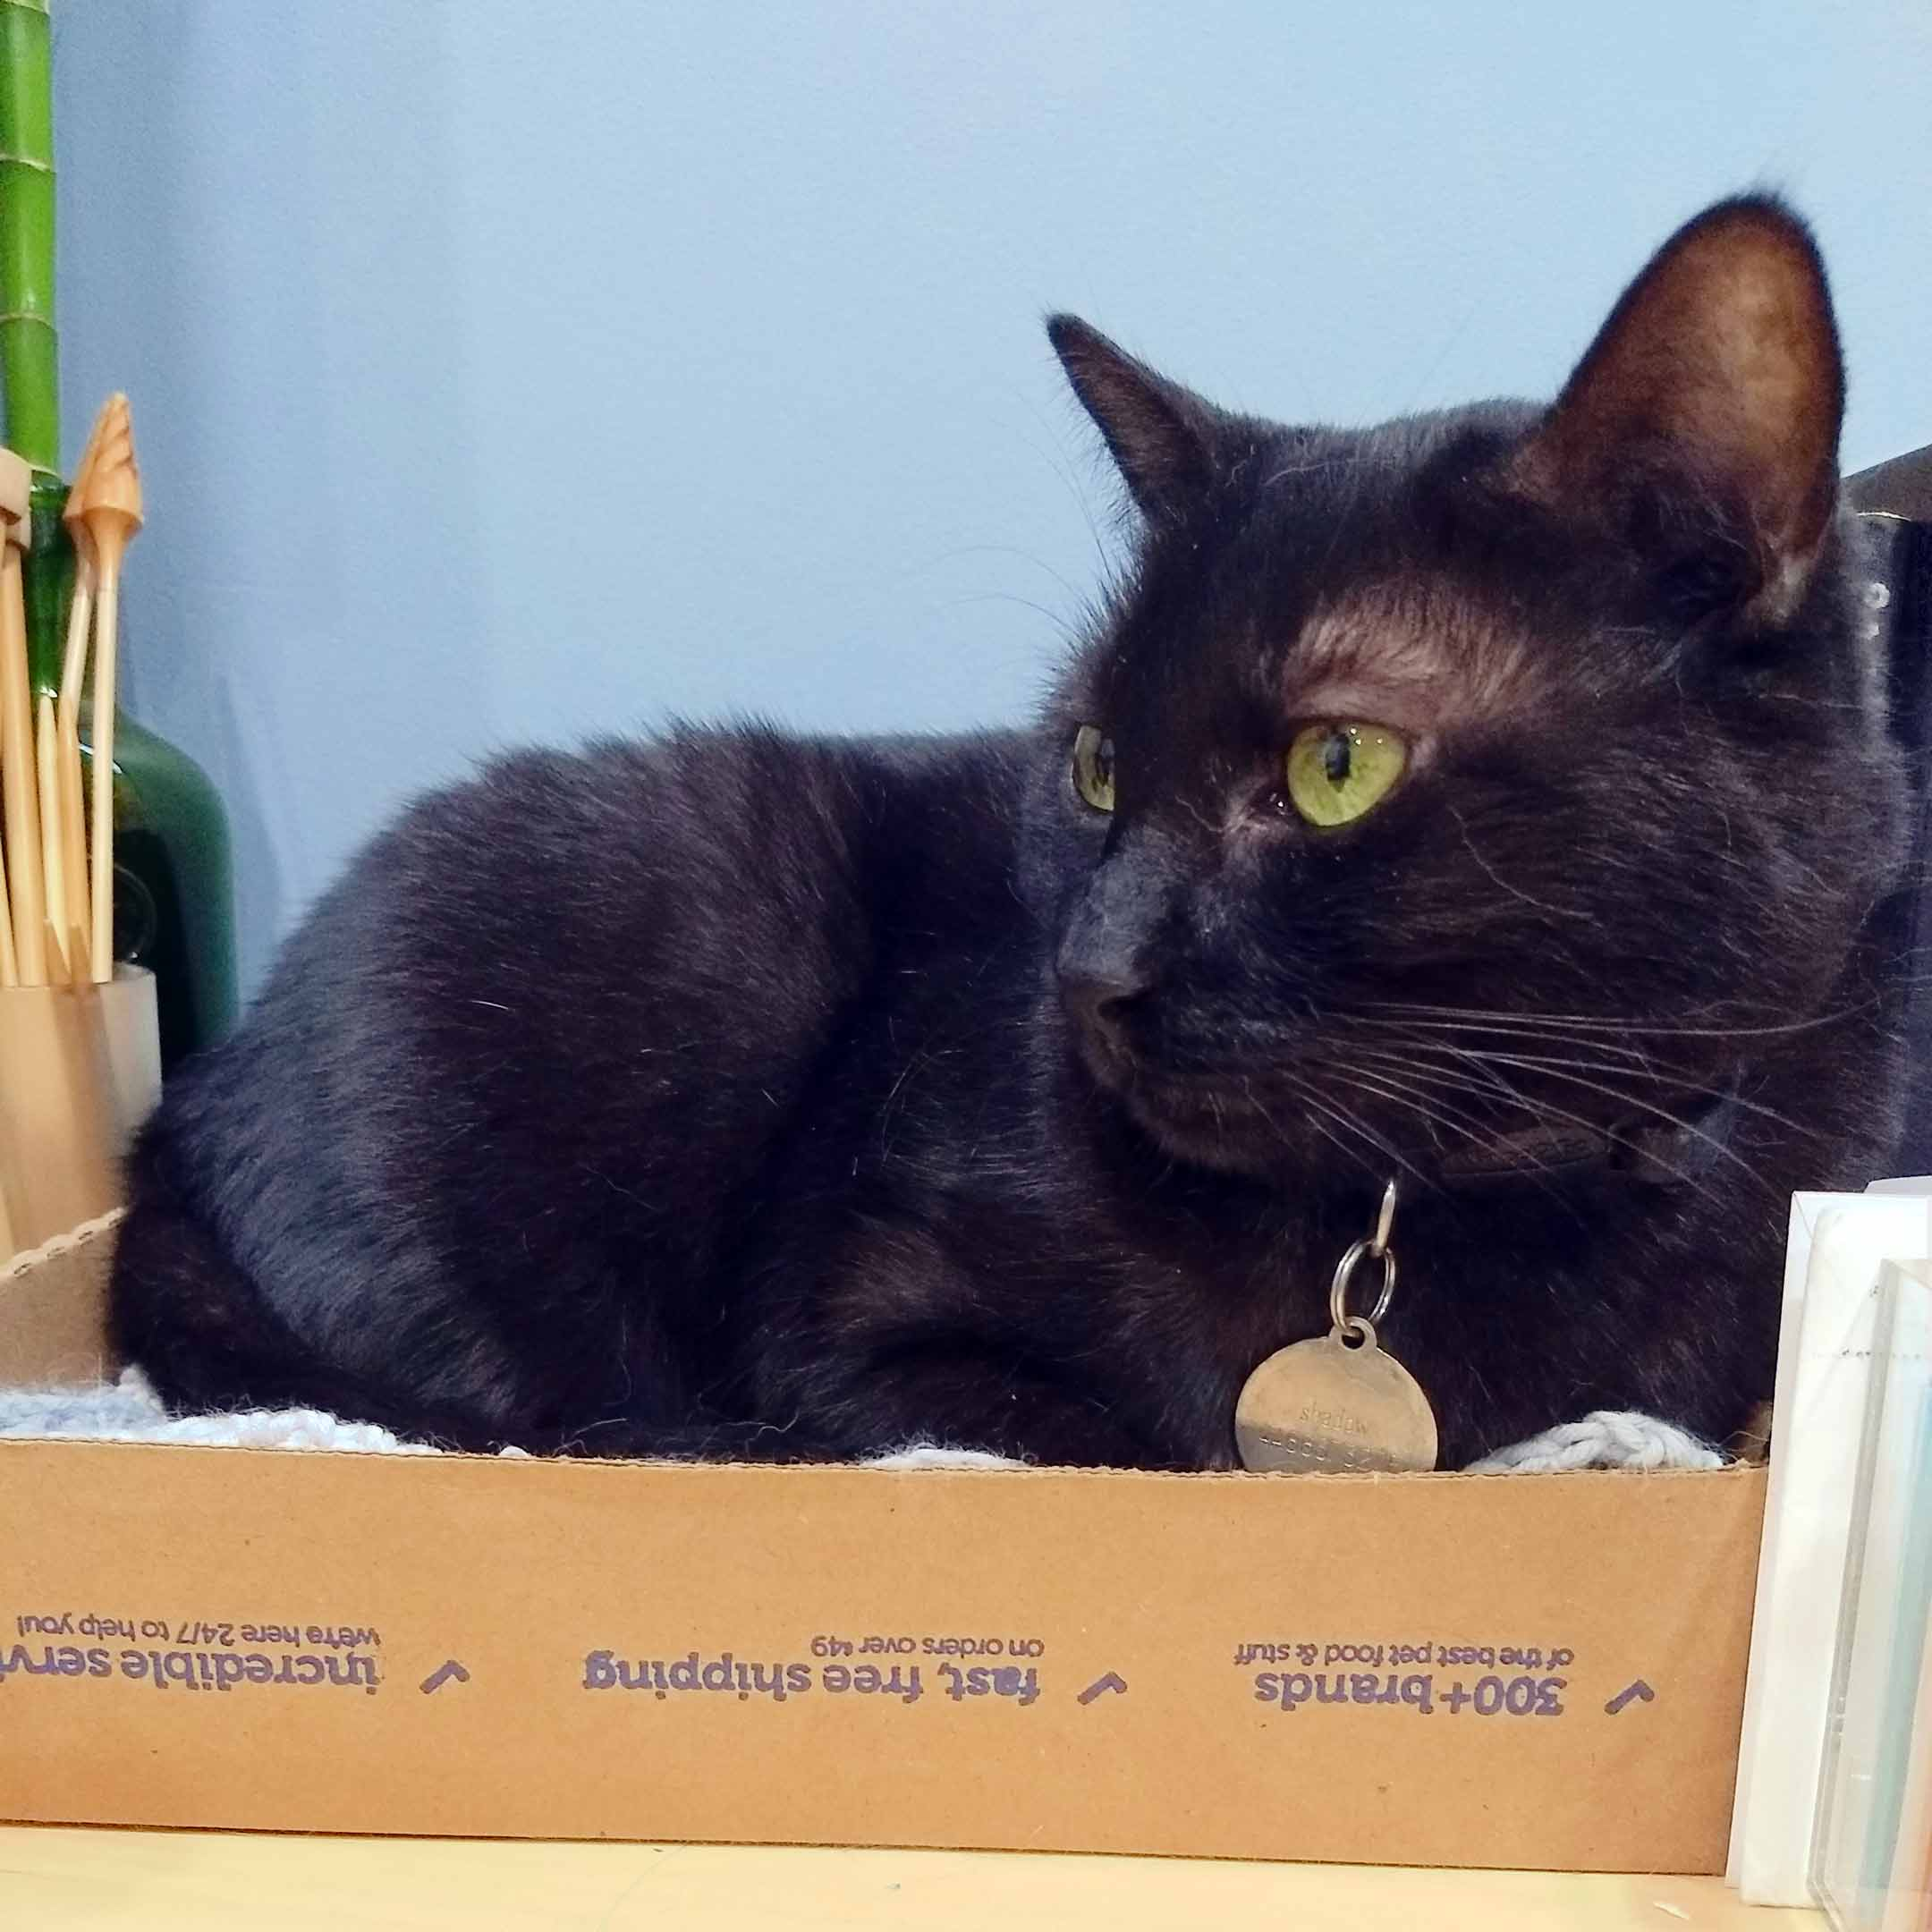 Black cat, named Shadow, in a small box looking off to the side.